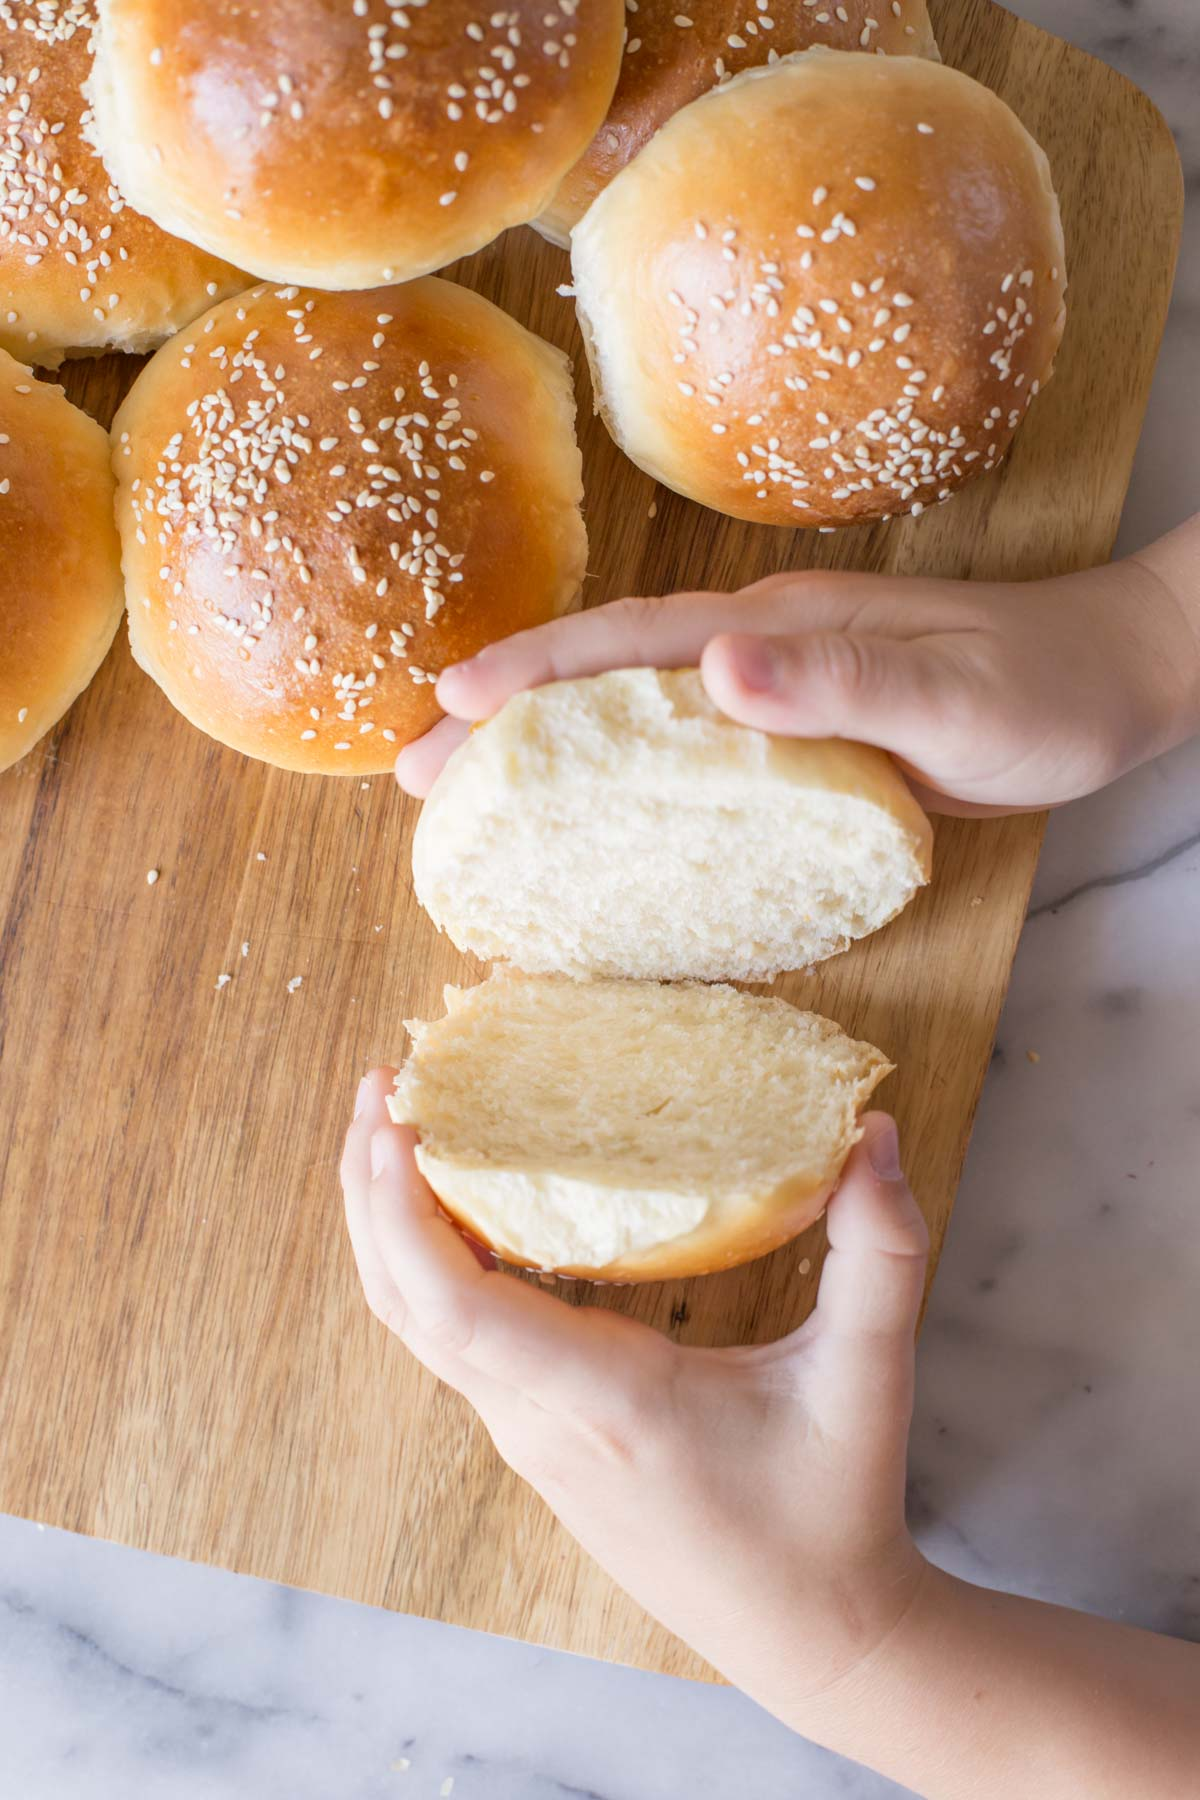 Two hands separating a cut Sourdough Hamburger Bun on a wooden cutting board with more buns next to it.